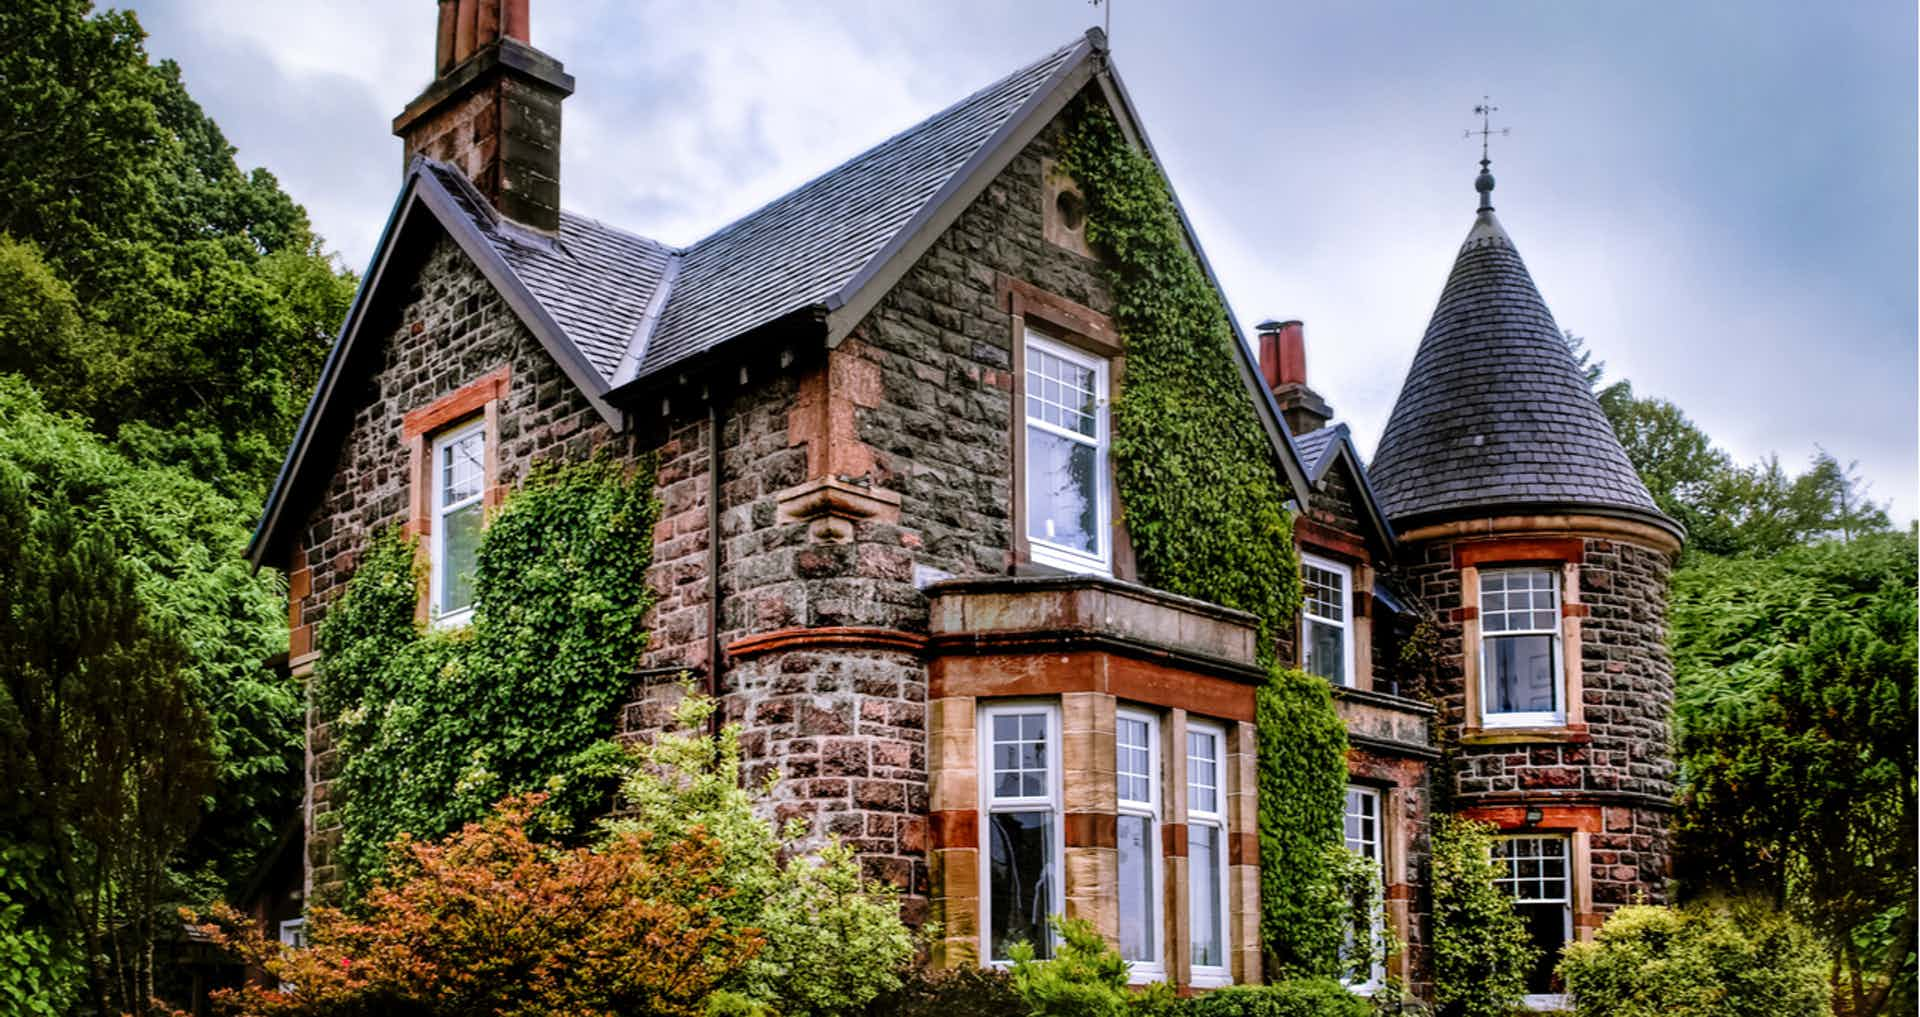 5 Ways to Take Care of an Older House